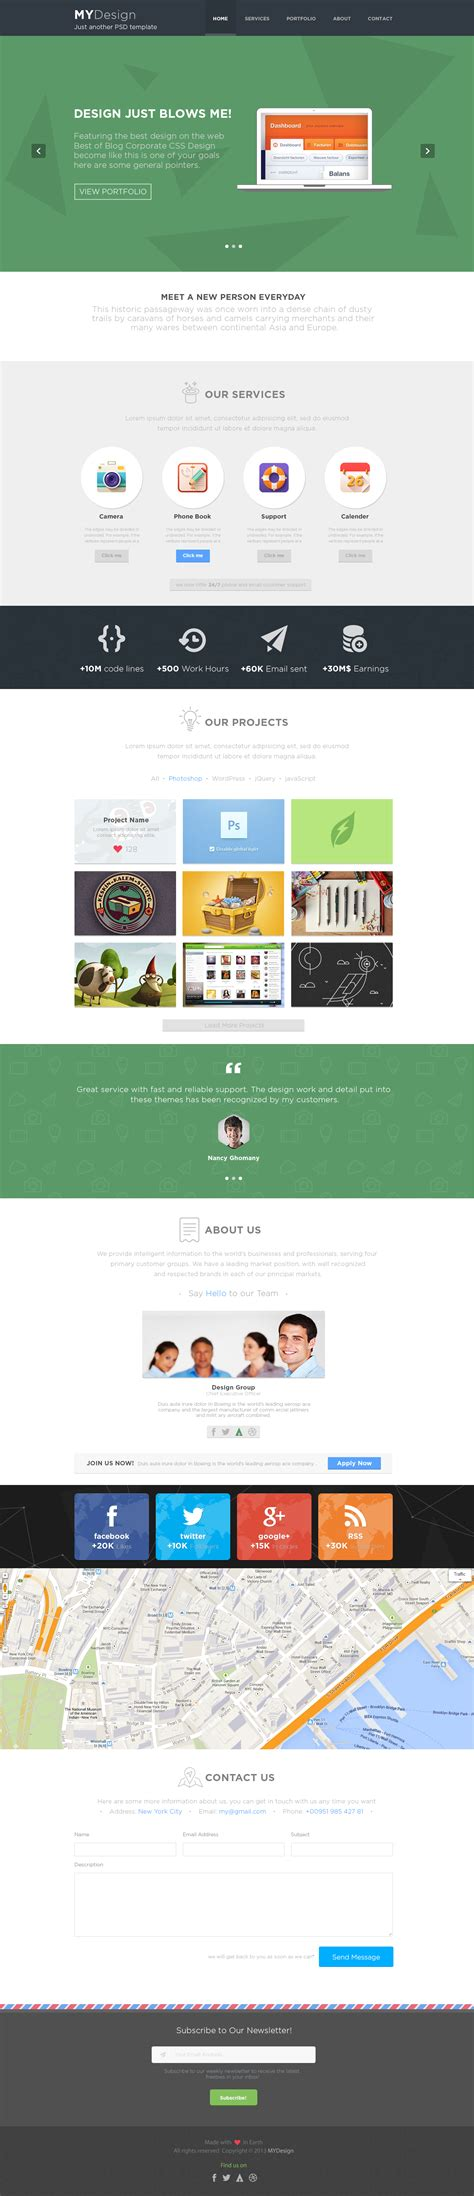 single page phlet templates mydesign onepage multipurpose flat psd template by